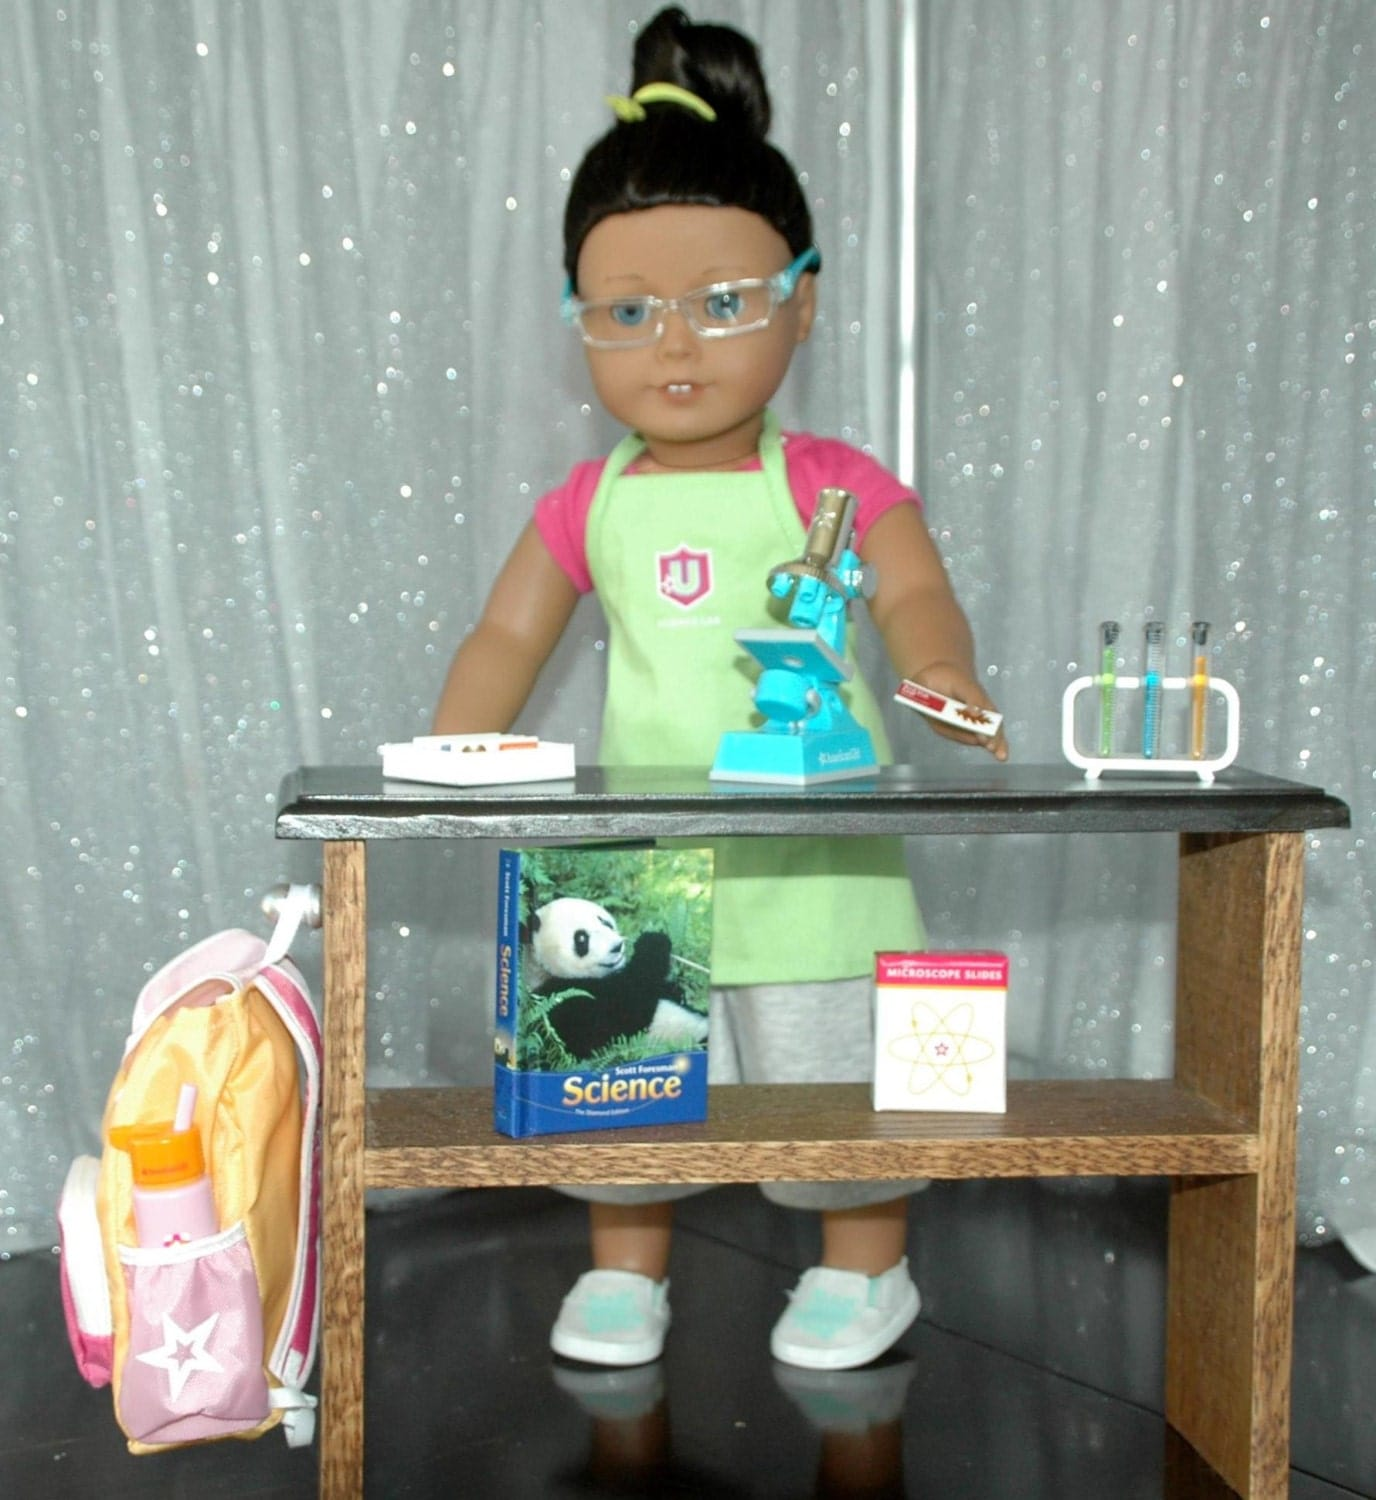 American Girl Doll Living Room Furniture: American Girl Doll Or Any 18 Inch Doll Science Lab Table